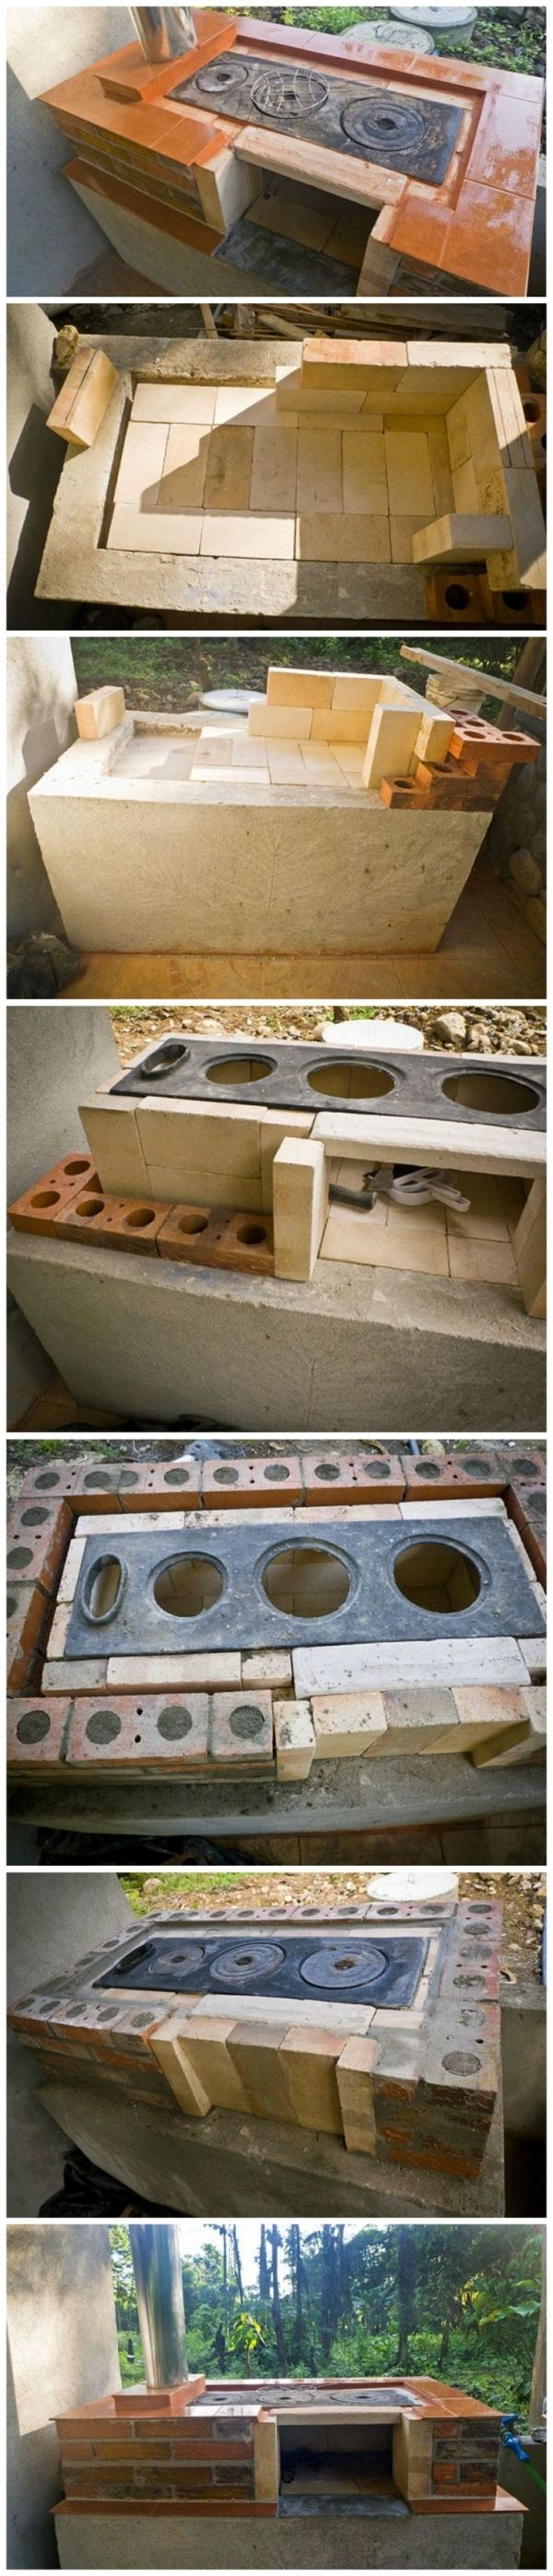 How to build your own diy outdoor wood stove oven cooker for Build your own rocket stove